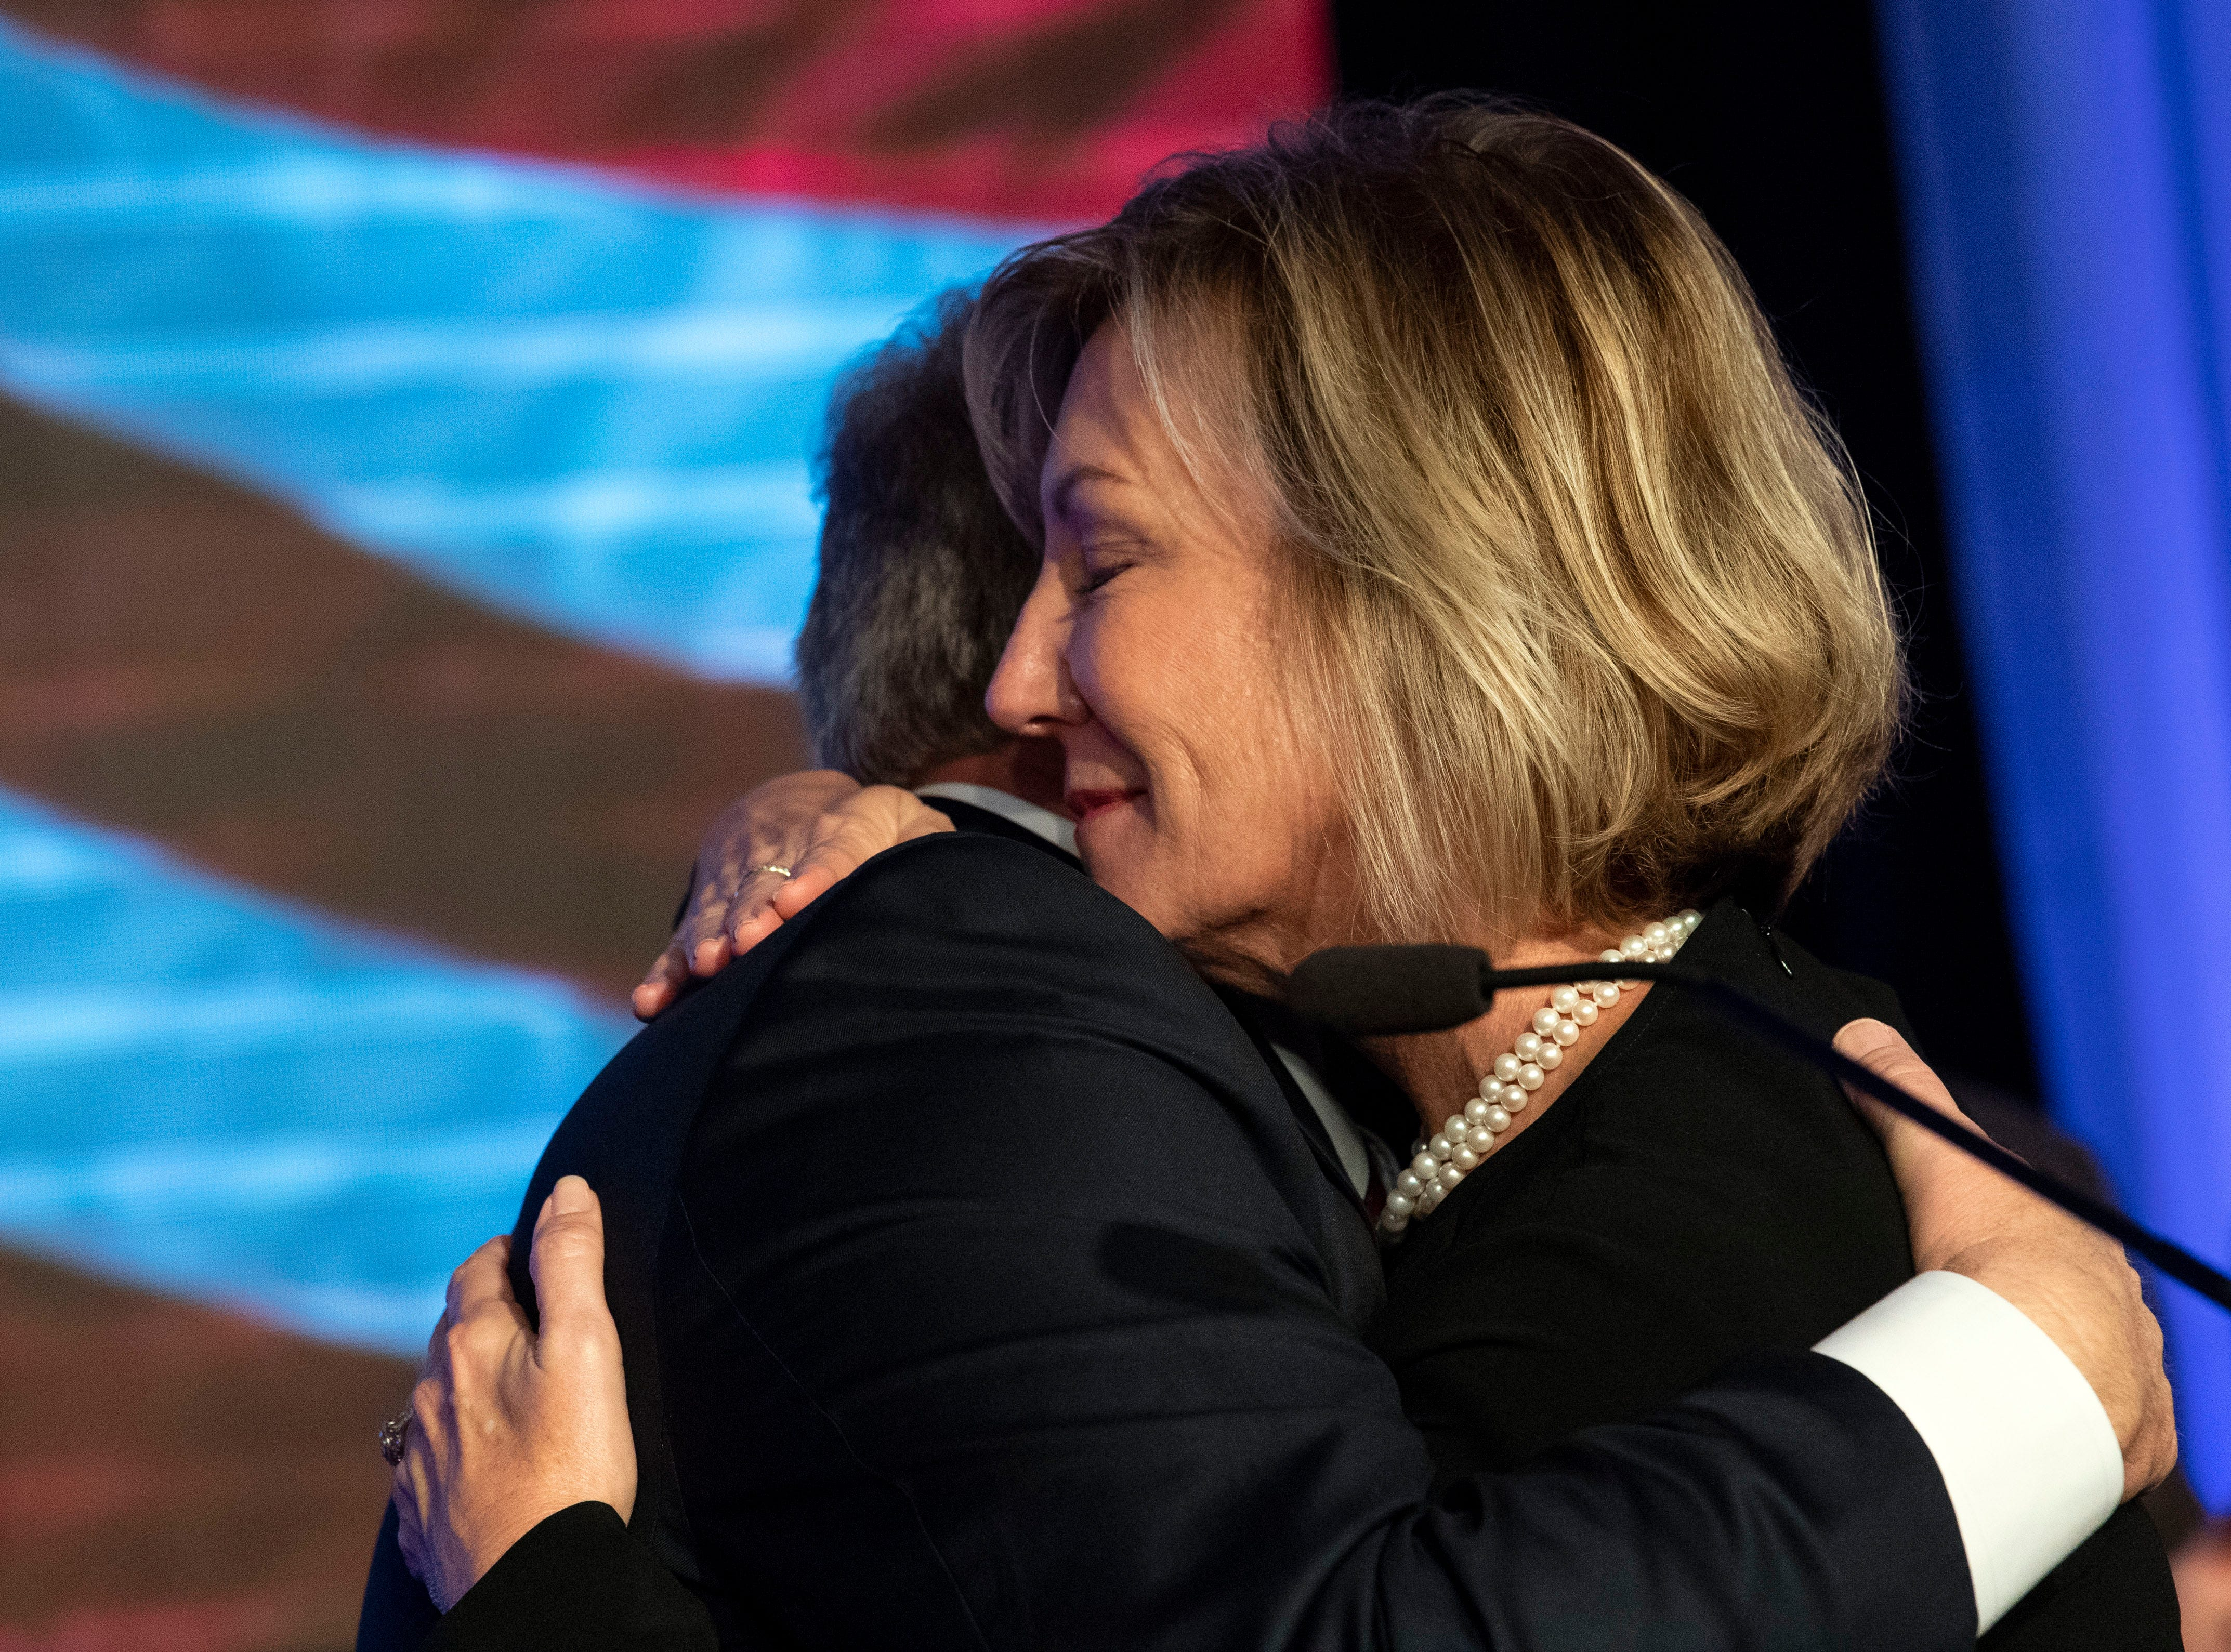 Scott Wagner and his wife, Tracy, hug following his concession speech at the Wyndham Garden York hotel on Tuesday, Nov. 6, 2018. Wagner lost to Democratic incumbent Tom Wolf. During his concession speech, Wagner said he's not going anywhere.